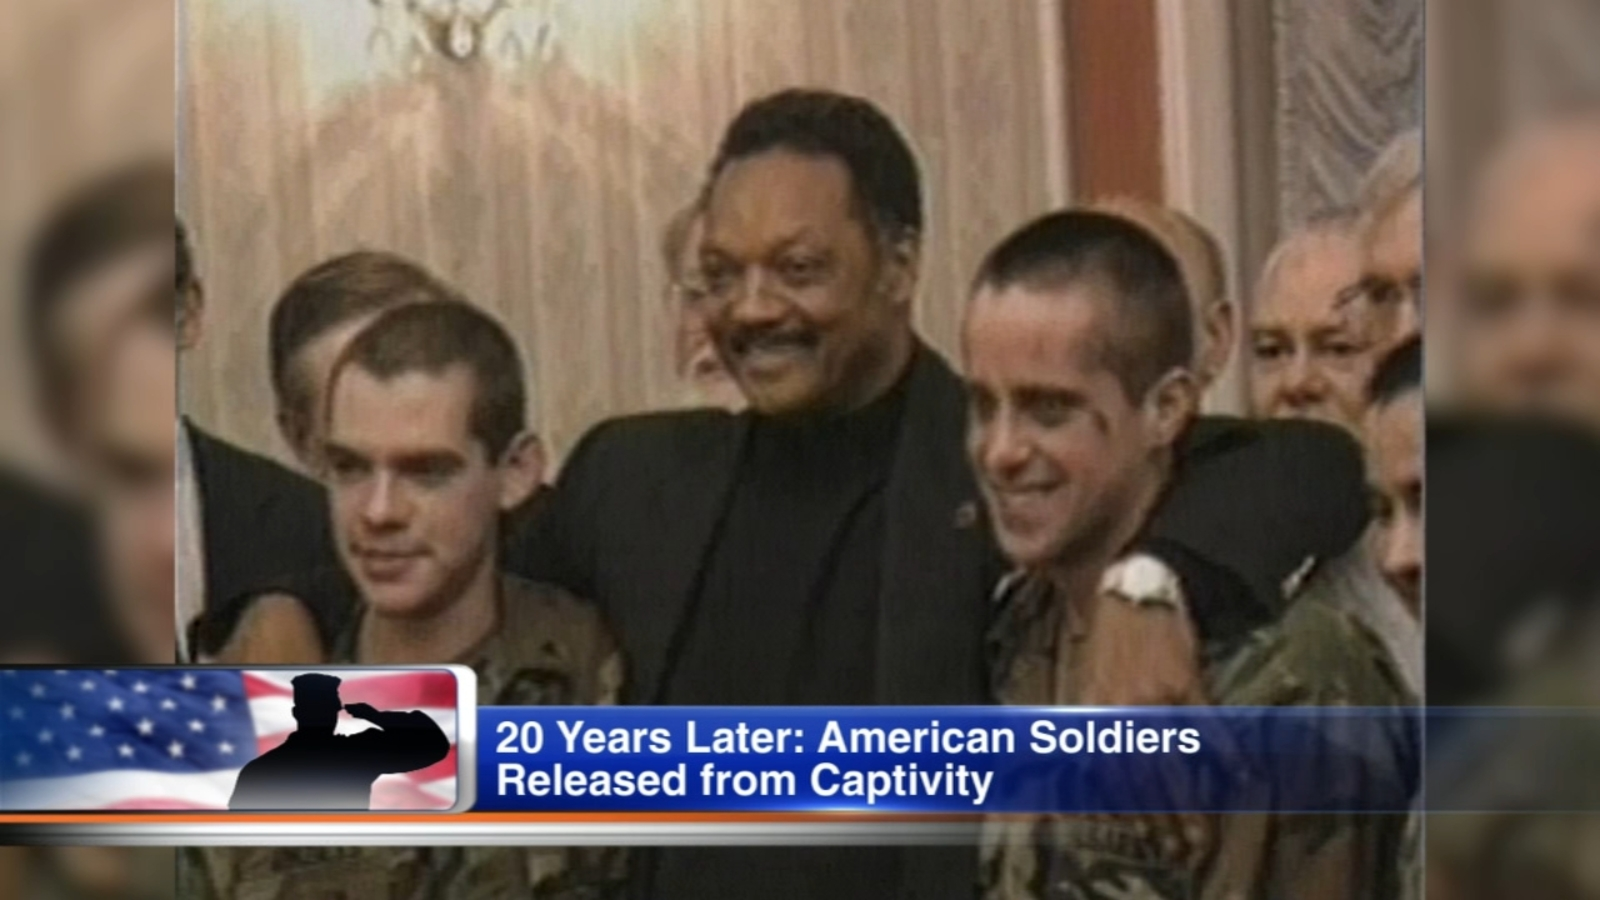 Rev. Jesse Jackson reunites with 2 former POWs he helped free 20 years ago